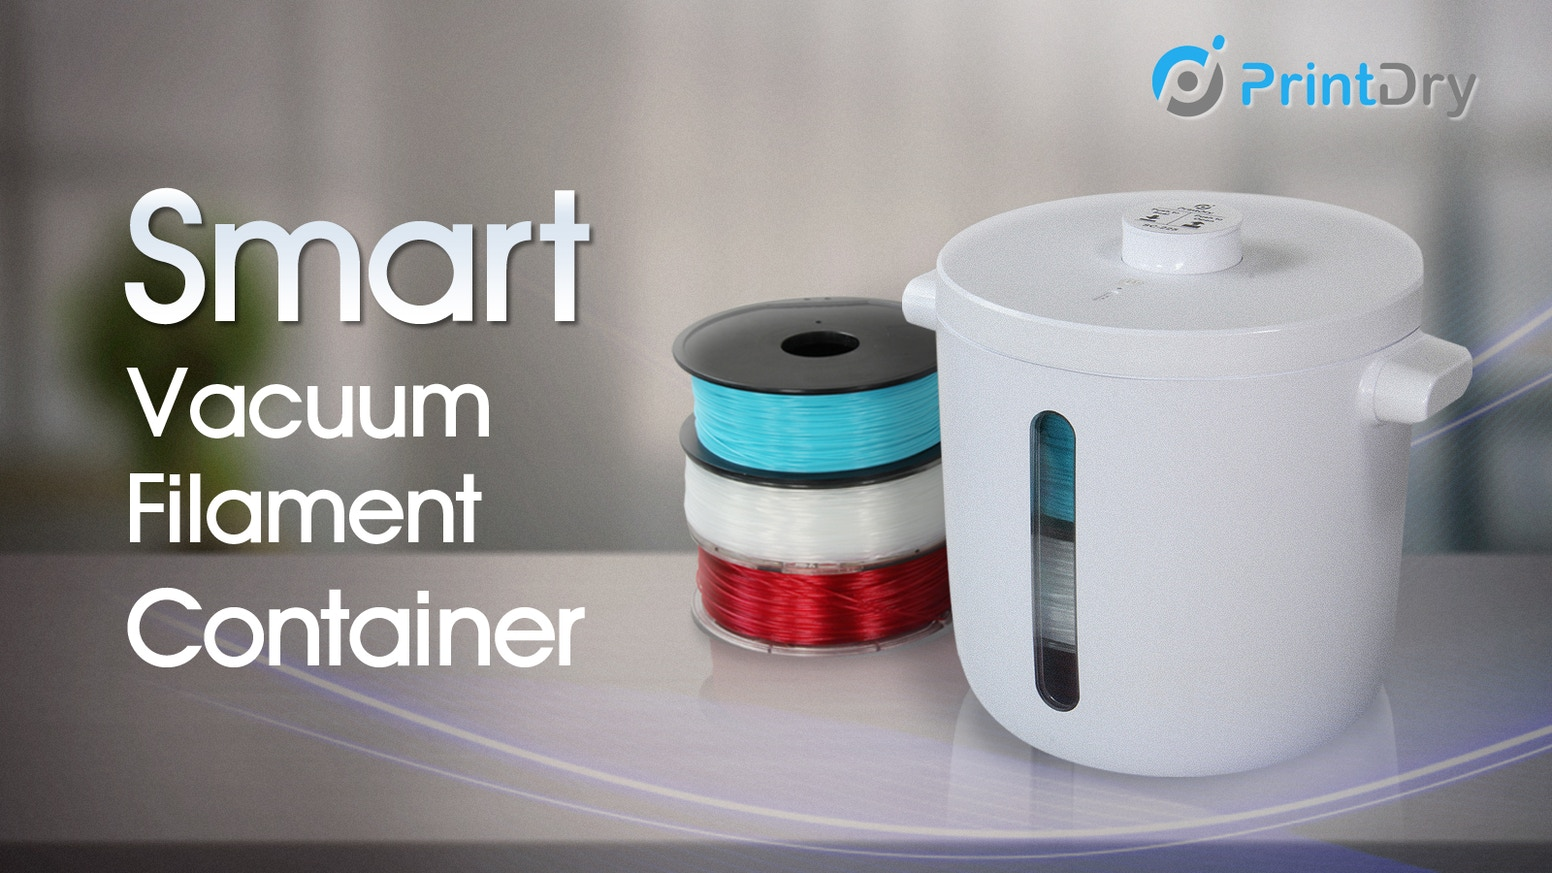 One-Touch Sealing & Auto Re-Sealing -- Smart Filament Storage Solution